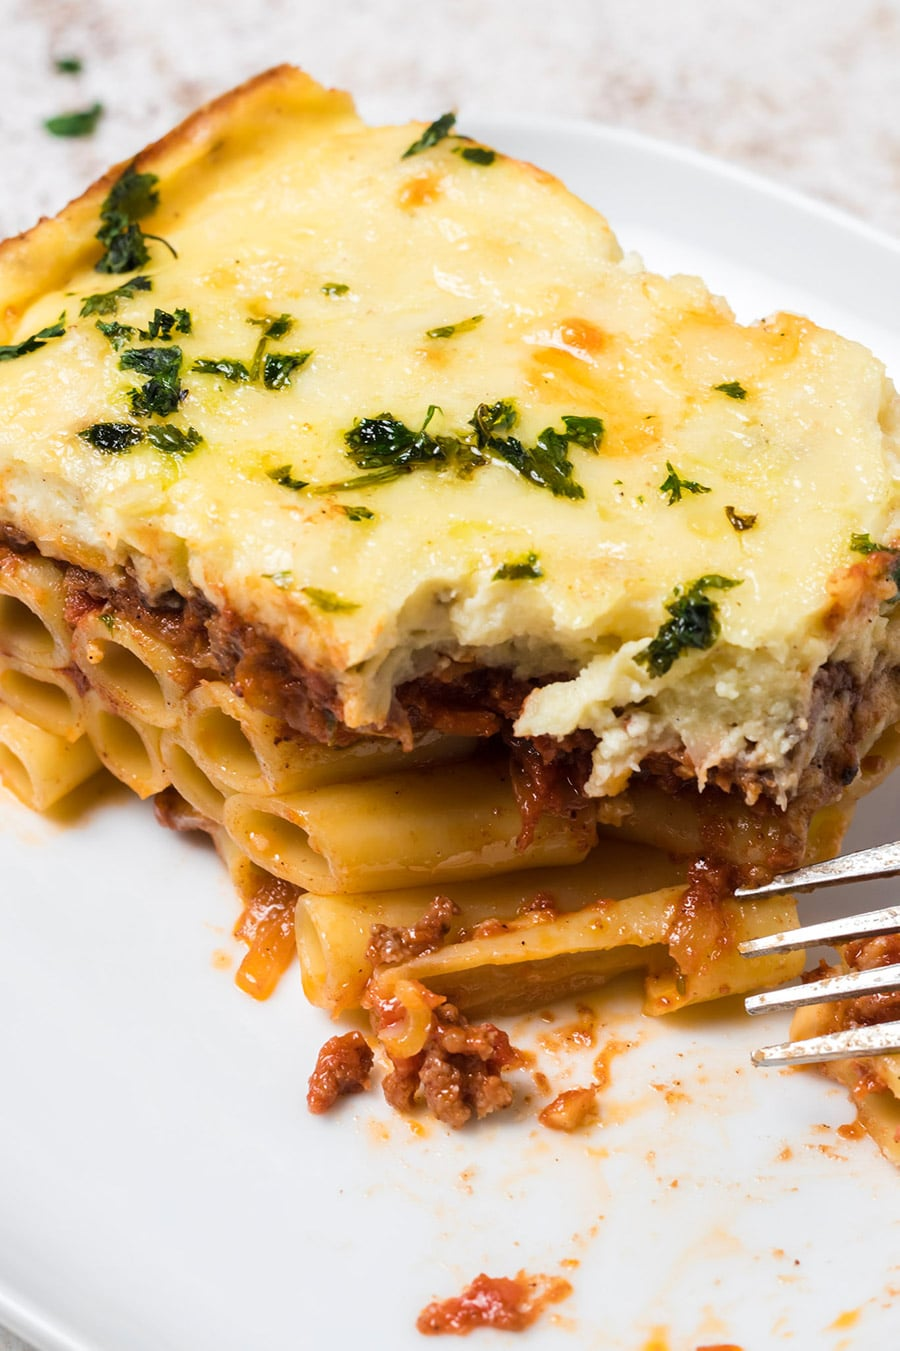 a slice of Greek lasagna on a white plate with a fork on the side.